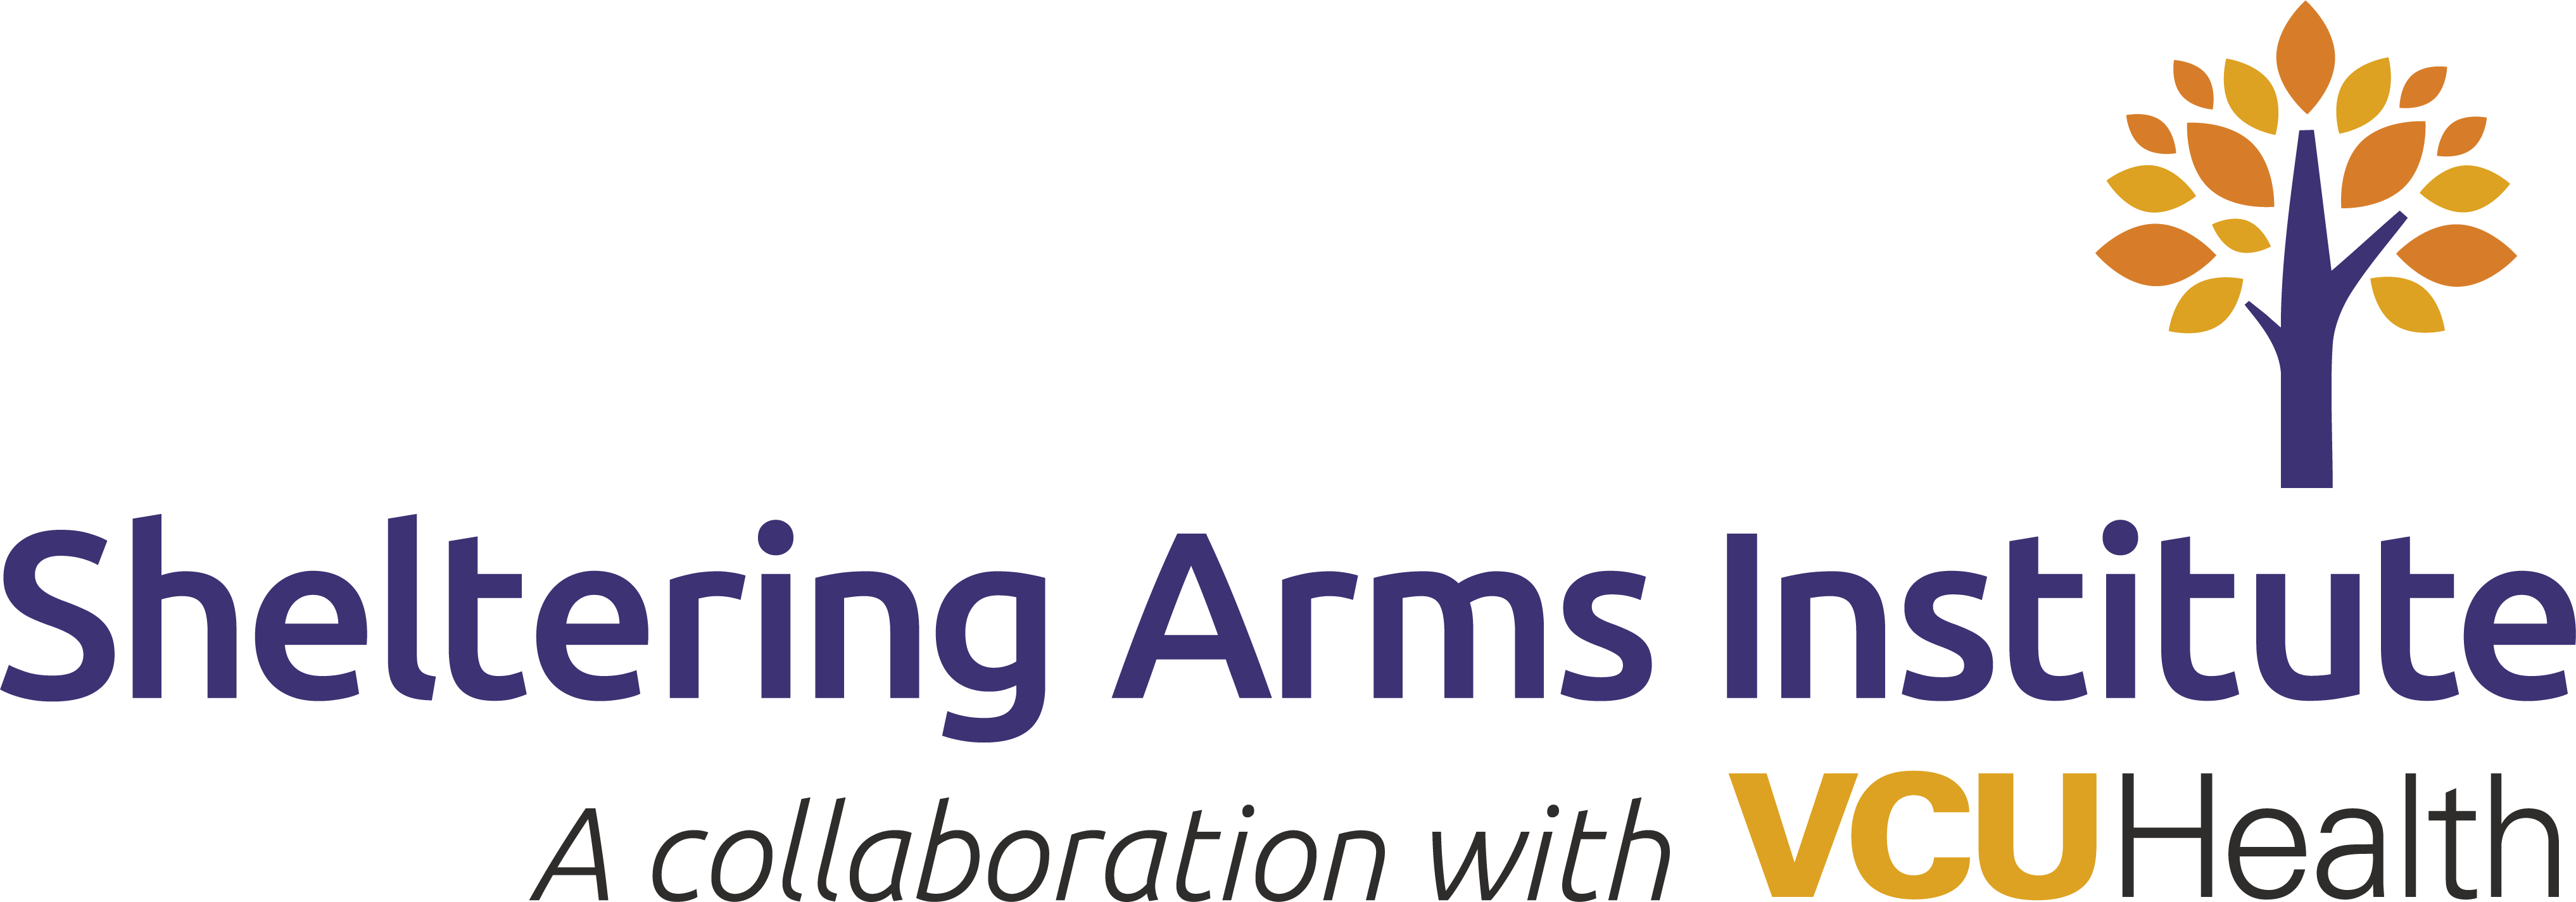 Sheltering Arms Institute